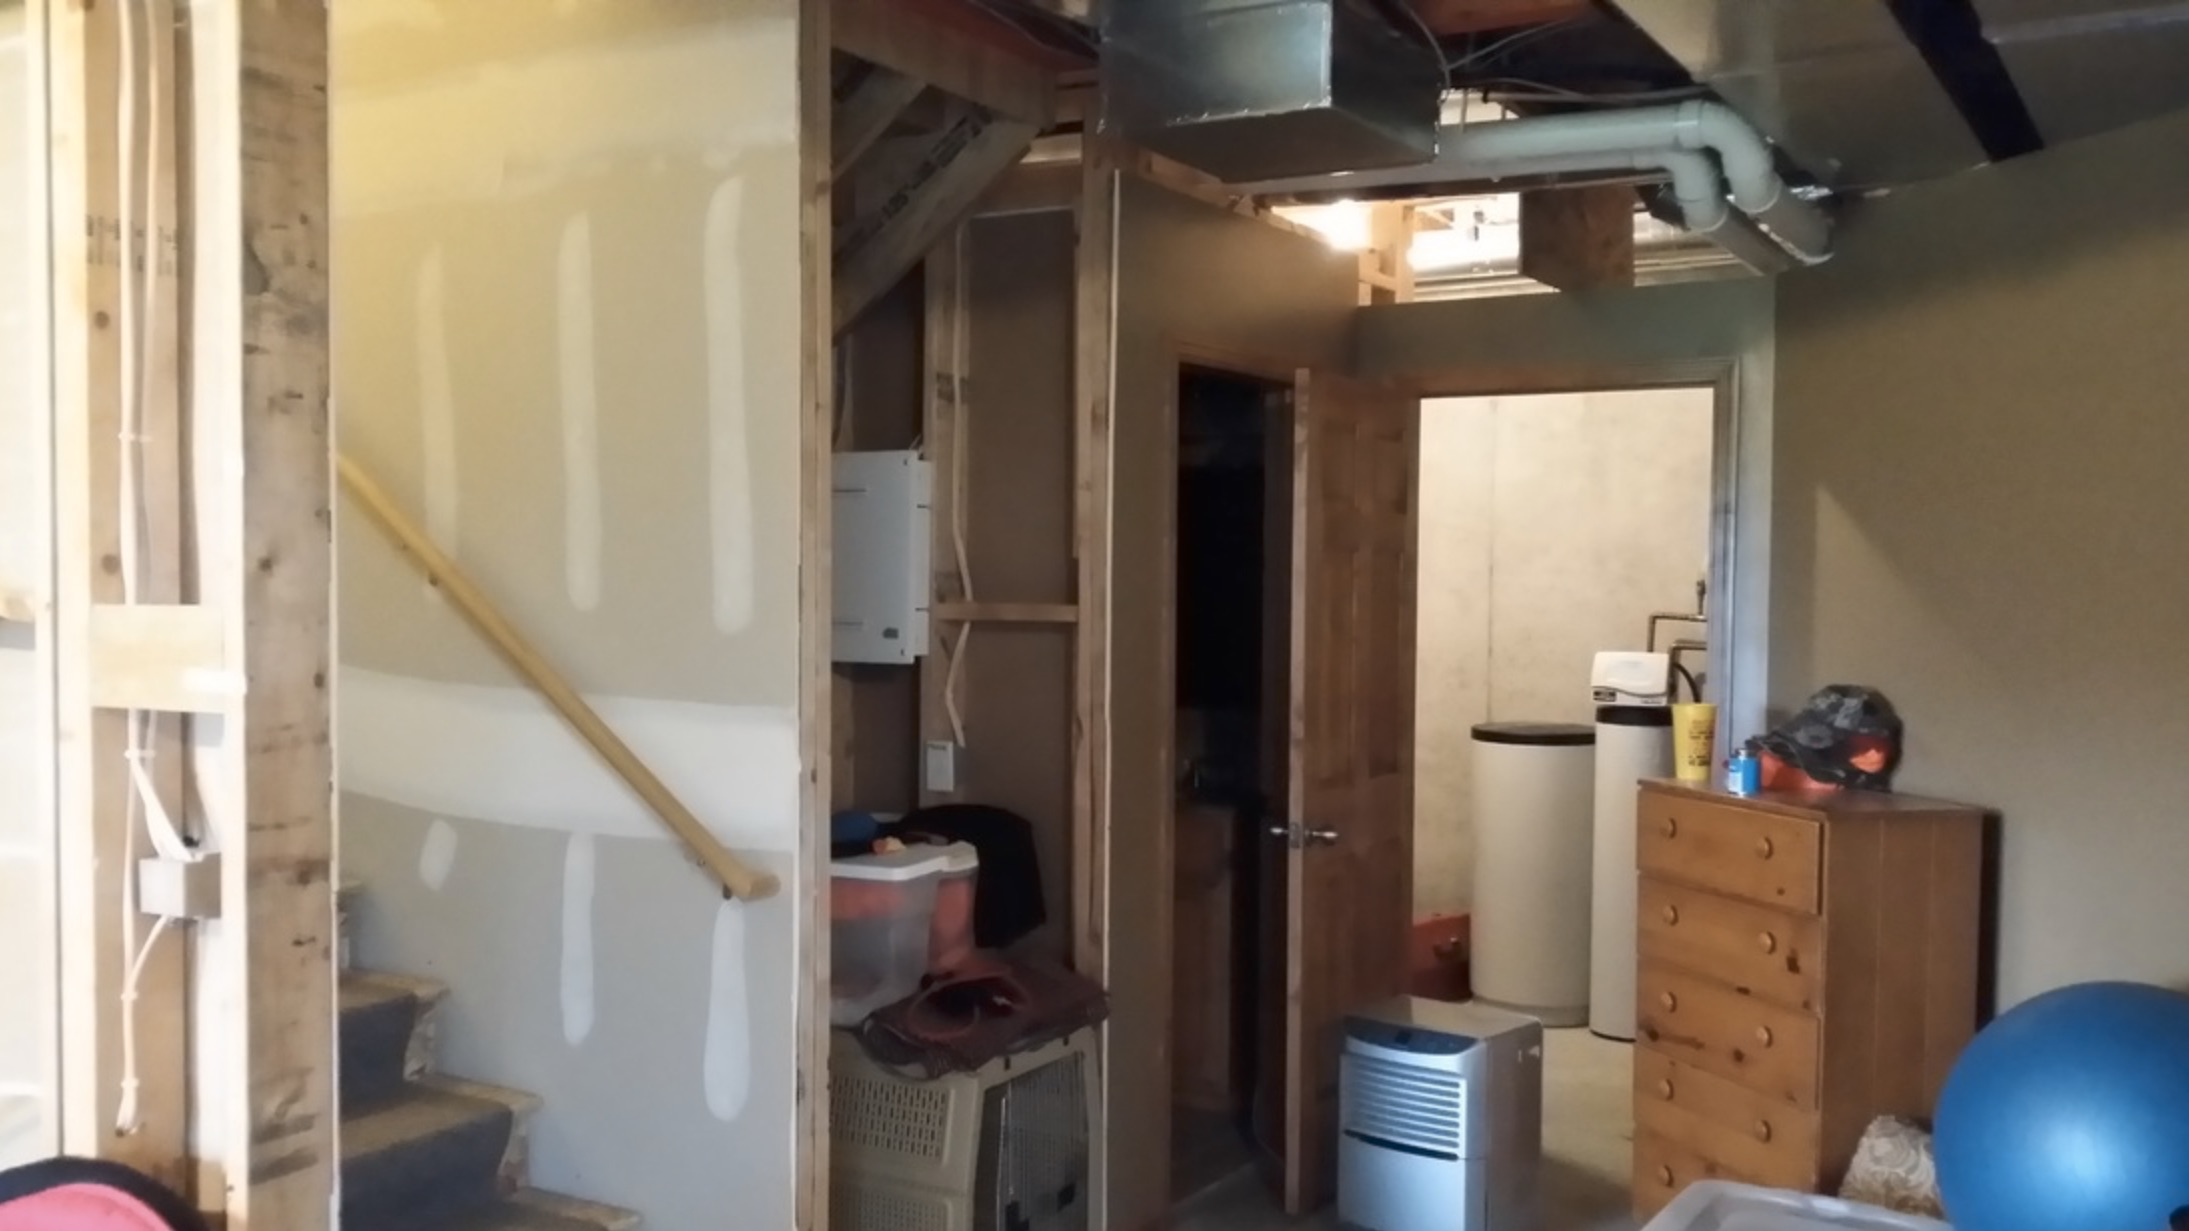 https://www.shccontracting.com/wp-content/uploads/2015/05/nearstairs-before.jpg